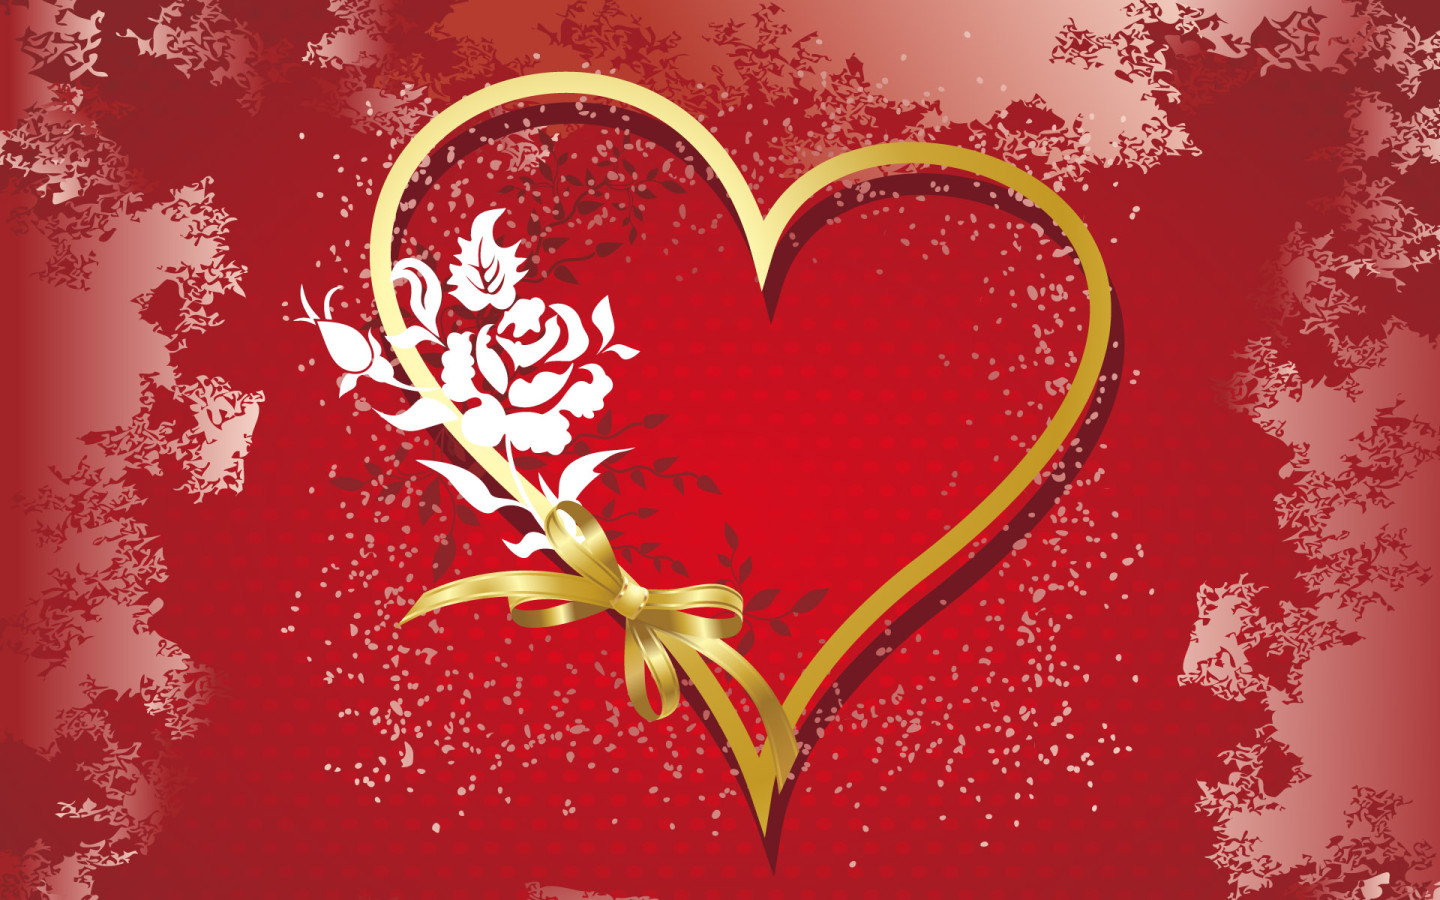 S Love Z Wallpapers : Valentine Hearts Wallpaper, Love Heart Wallpapers ...